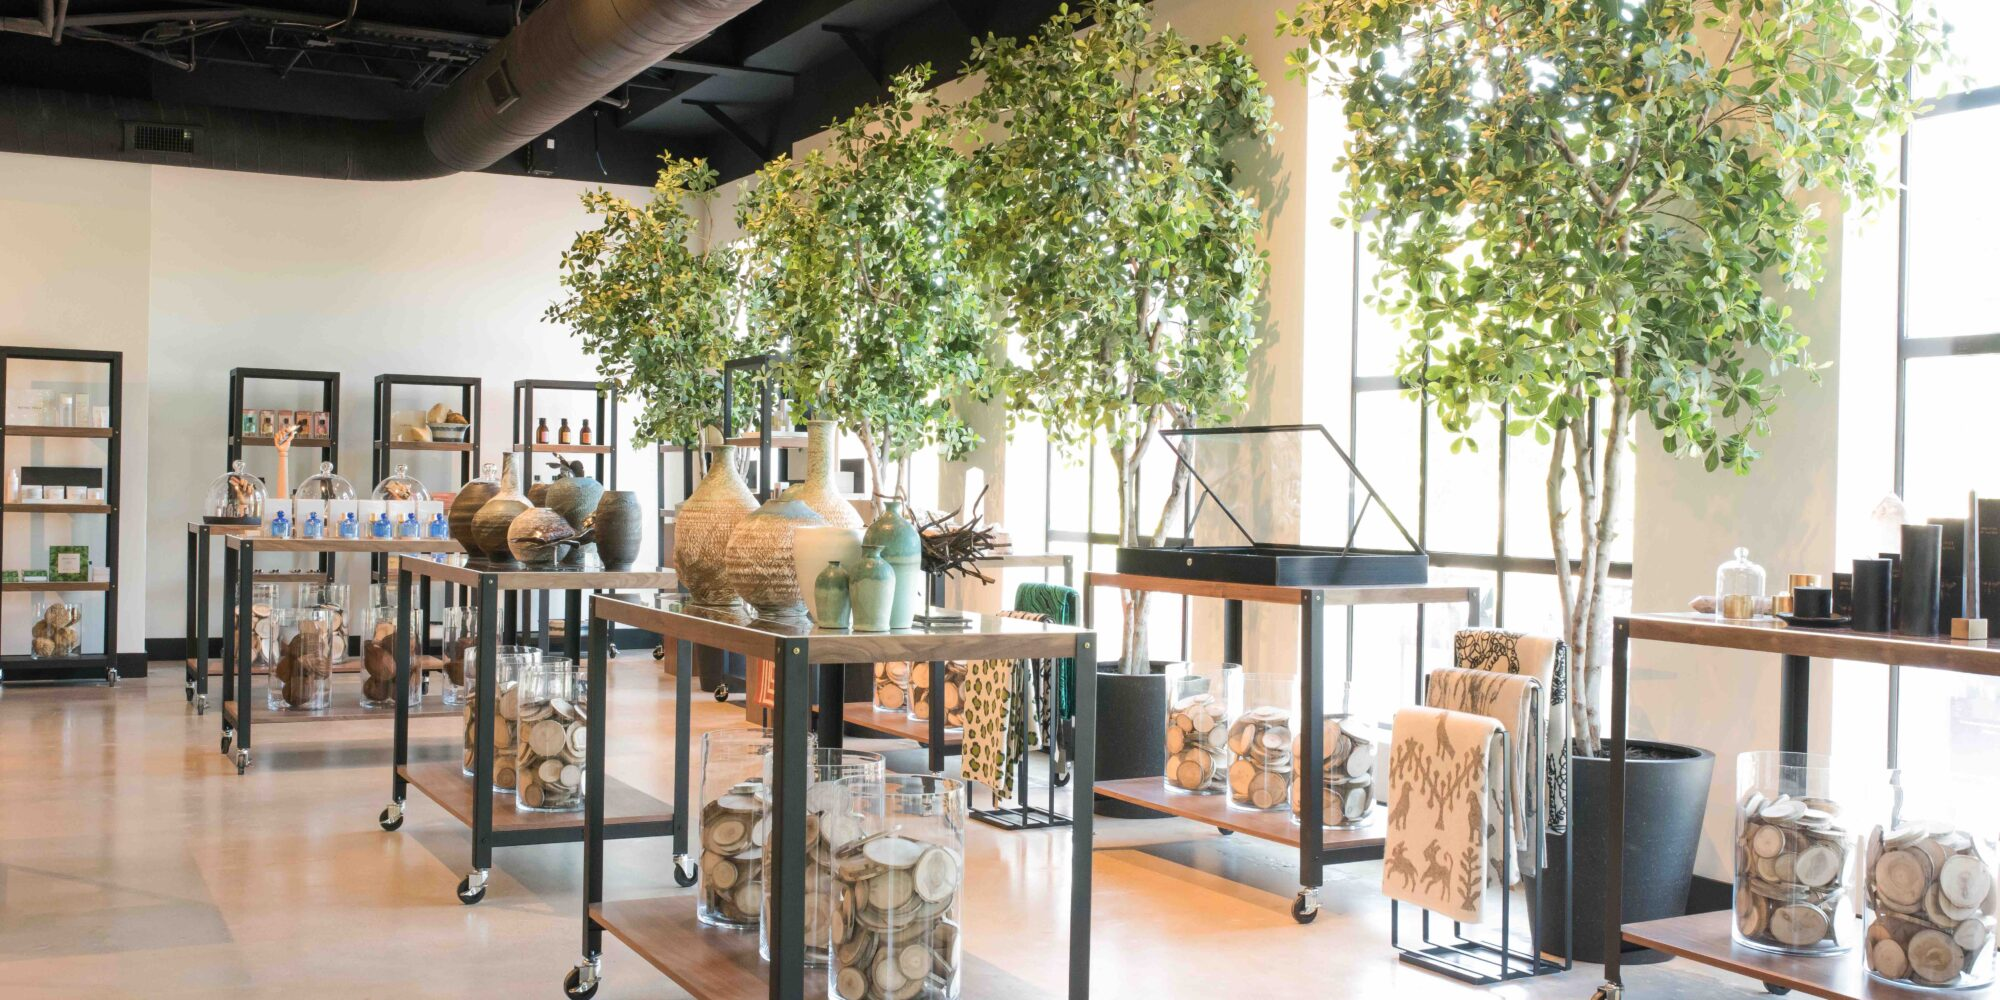 The Opposite Of Fast Beauty: How The Conservatory Curates An Assortment Built To Last